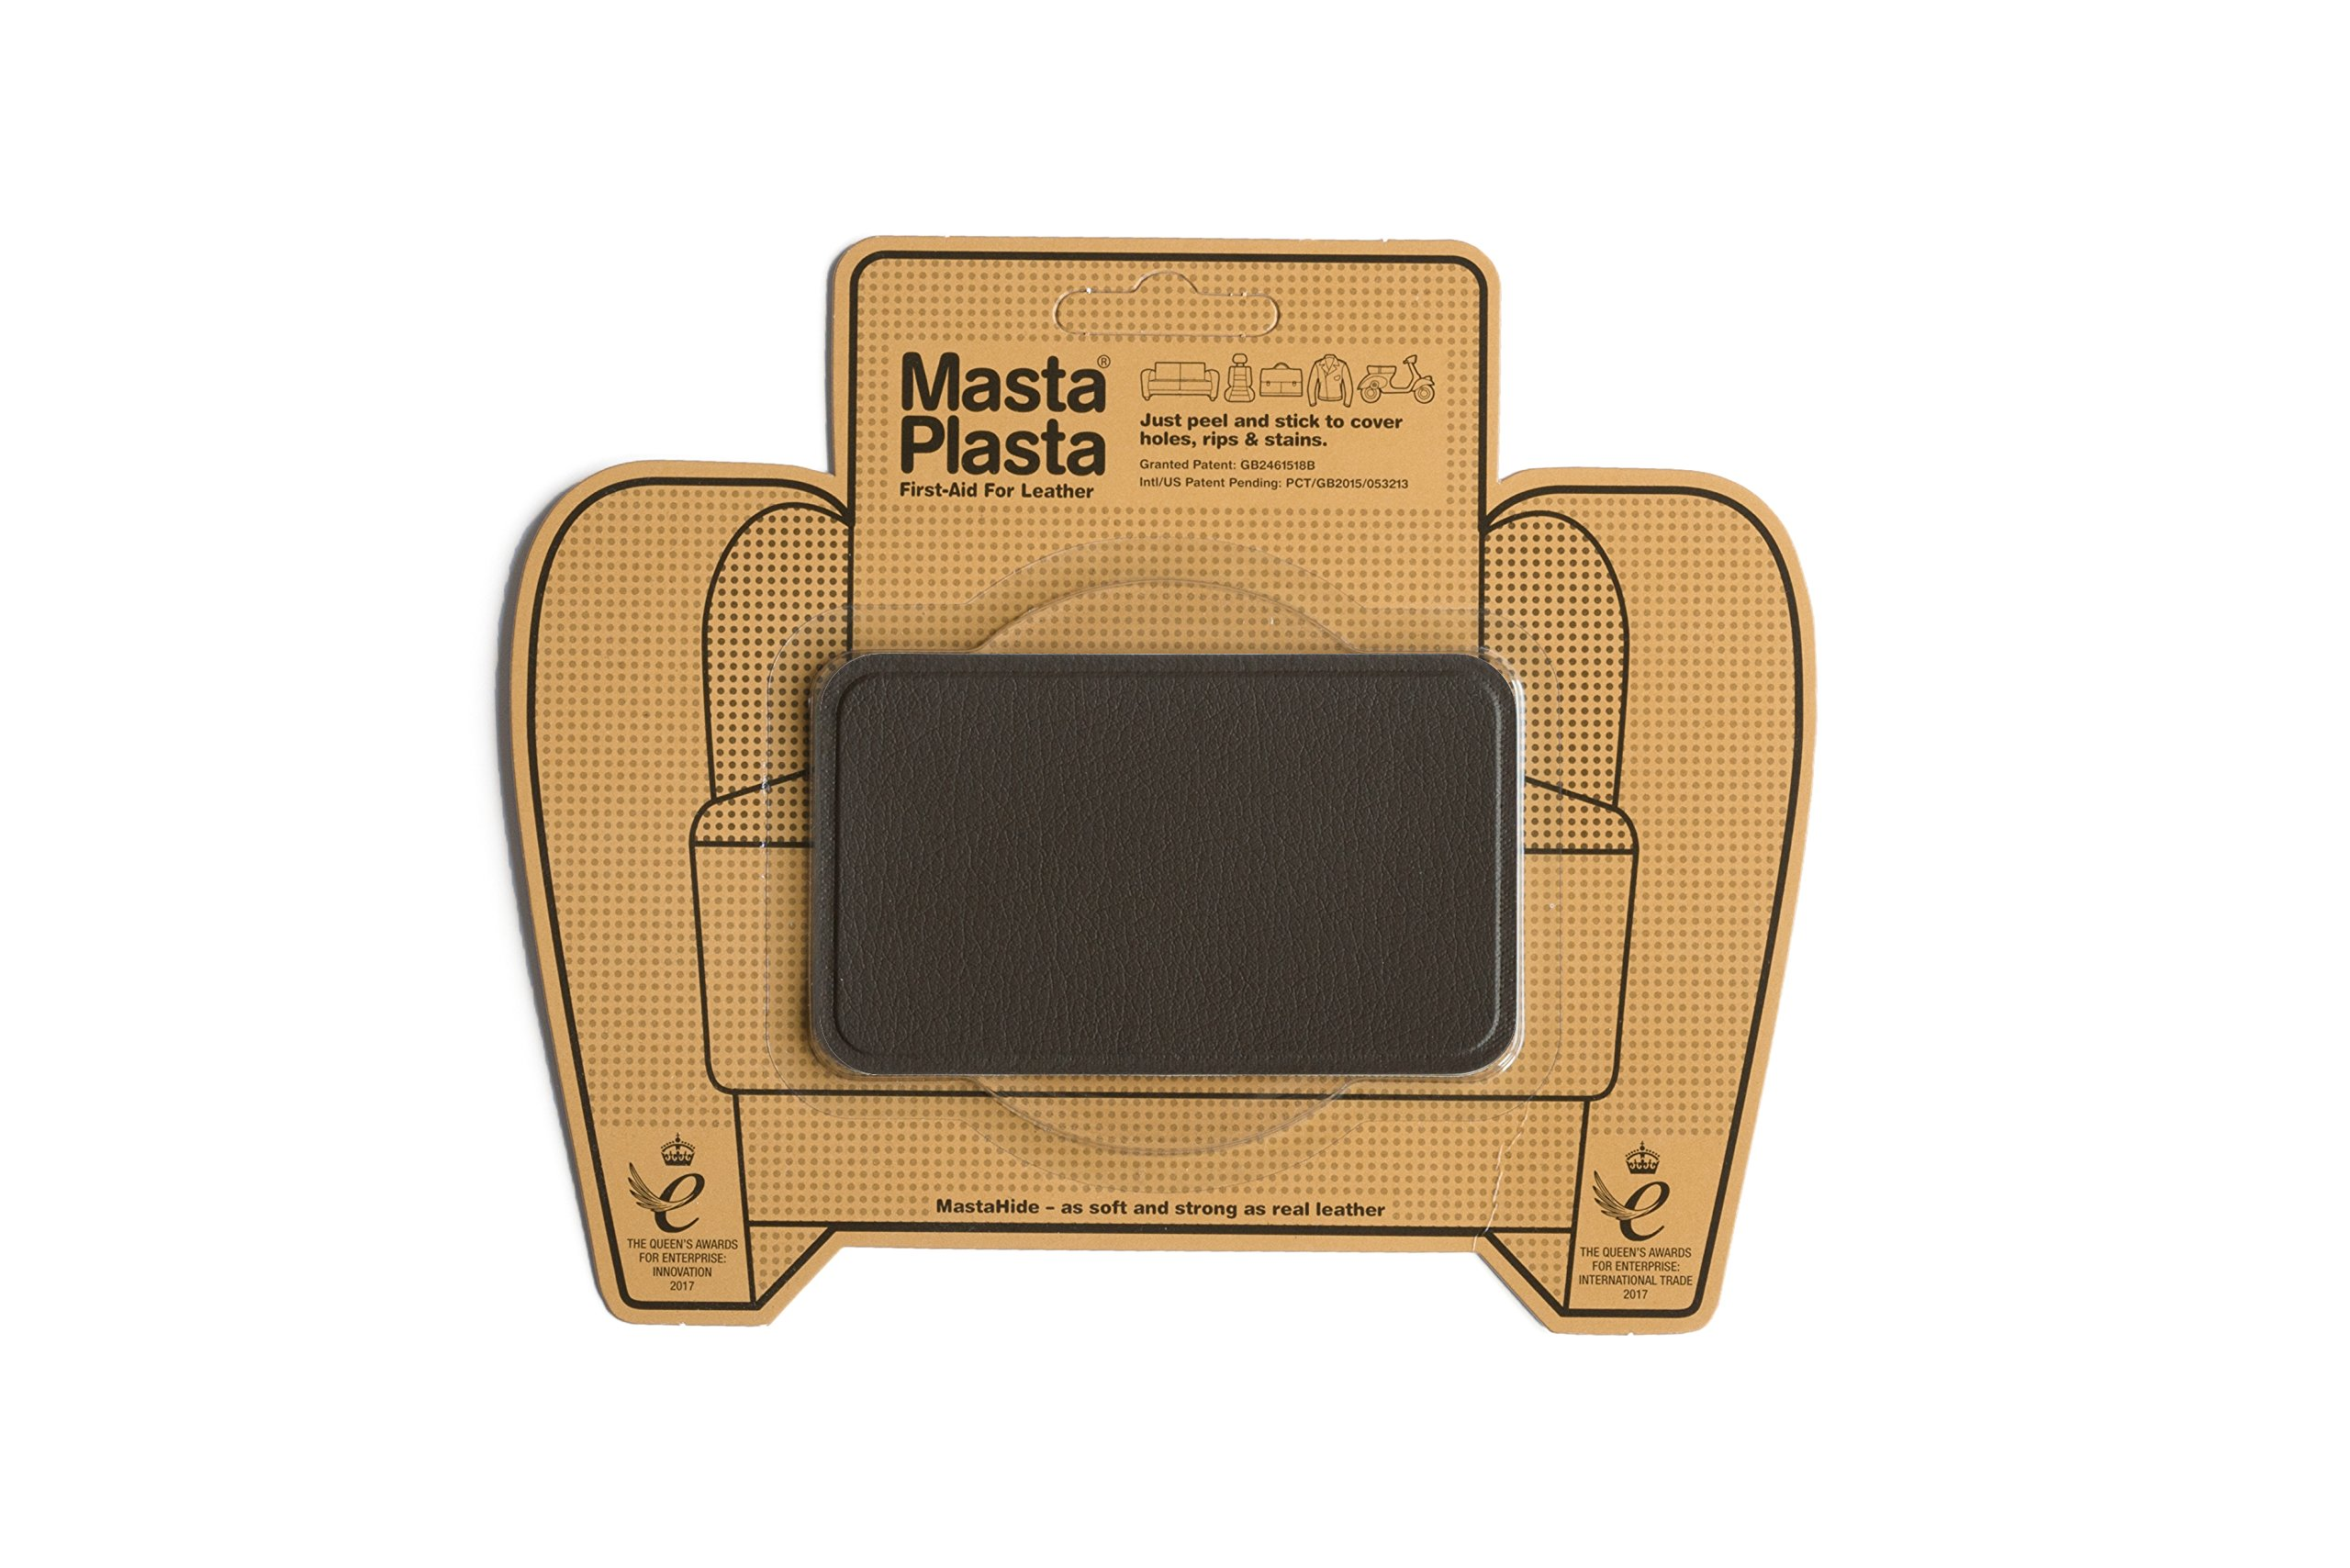 MASTAPLASTA, Leather Repair Patch, First-aid for Sofas, Car Seats, Handbags, Jackets, etc. Brown Color, Plain 4-inch by 2.4-inch, Designs Vary